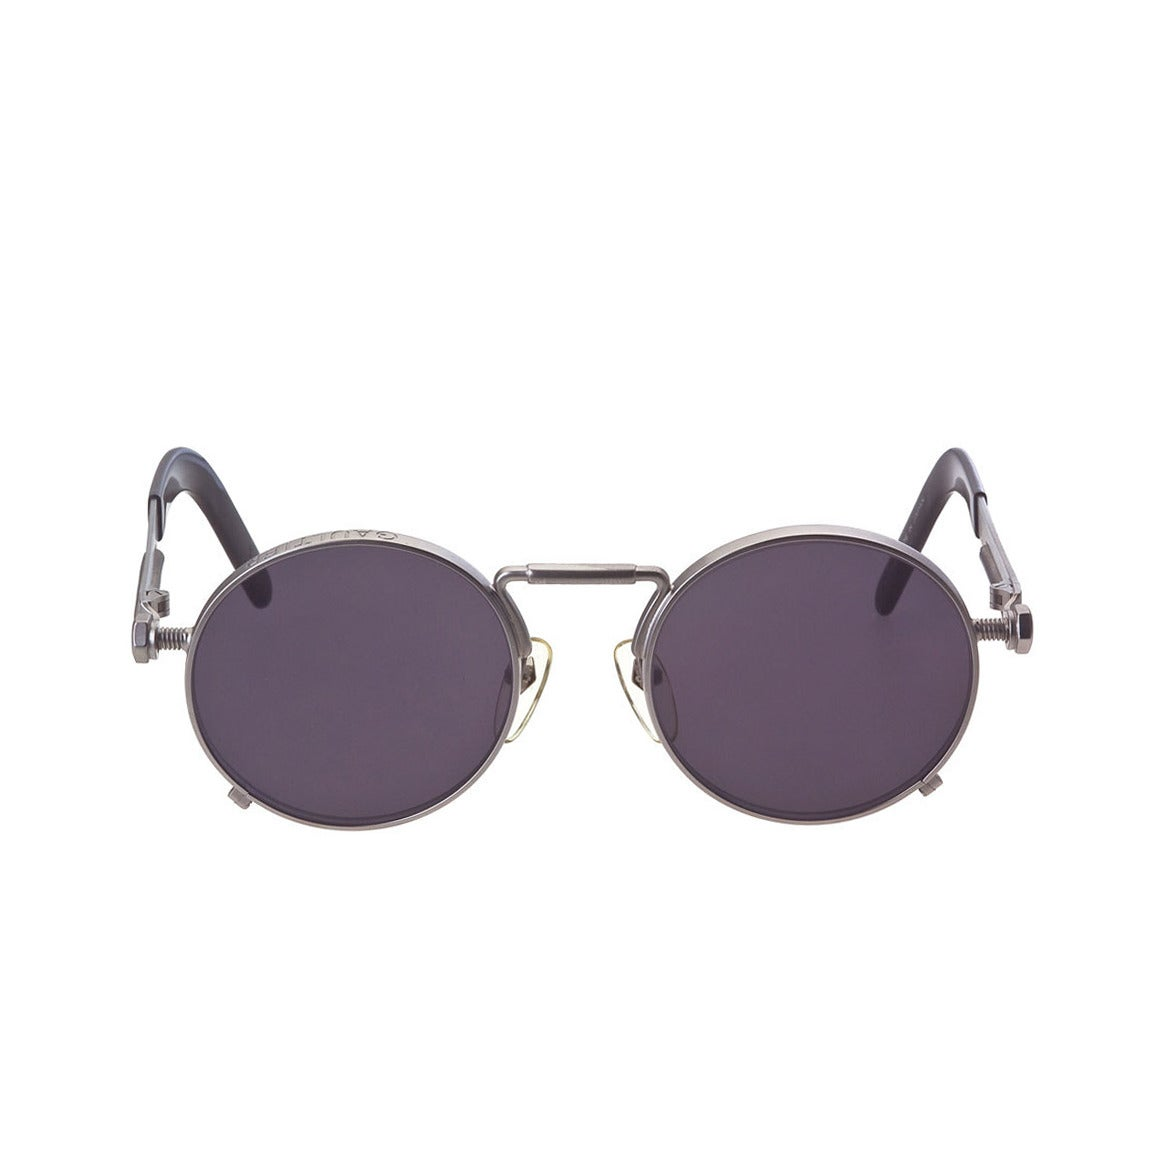 1beceeae015 Jean Paul Gaultier 56-8171 Silver Sunglasses For Sale at 1stdibs